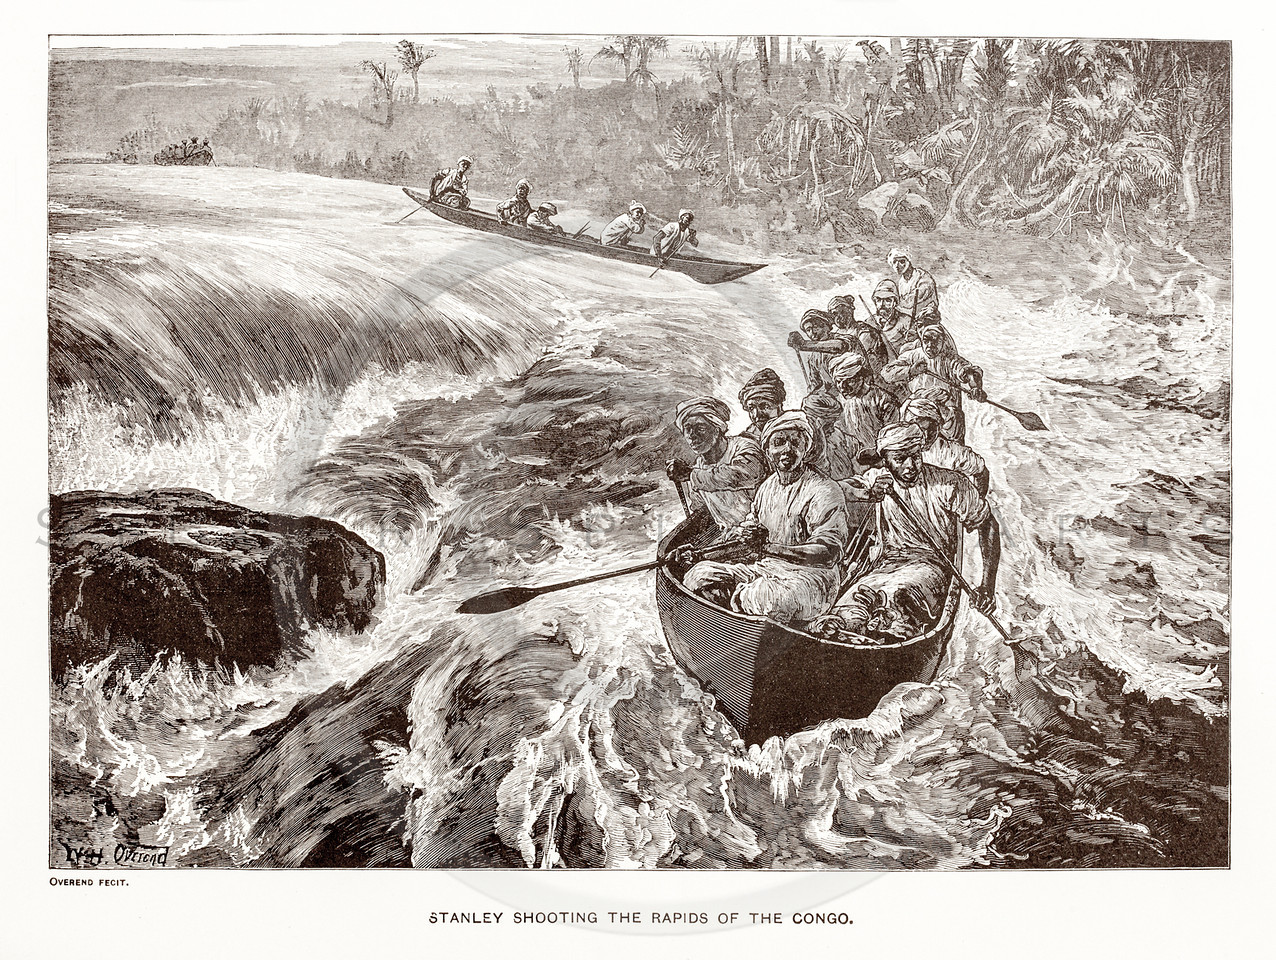 Vintage 1800s Sepia Illustration of the Rapids of the Congo.  The natural patina, age-toning, imperfections, and old paper antiquing of this vintage 19th century illustration are preserved in this image.